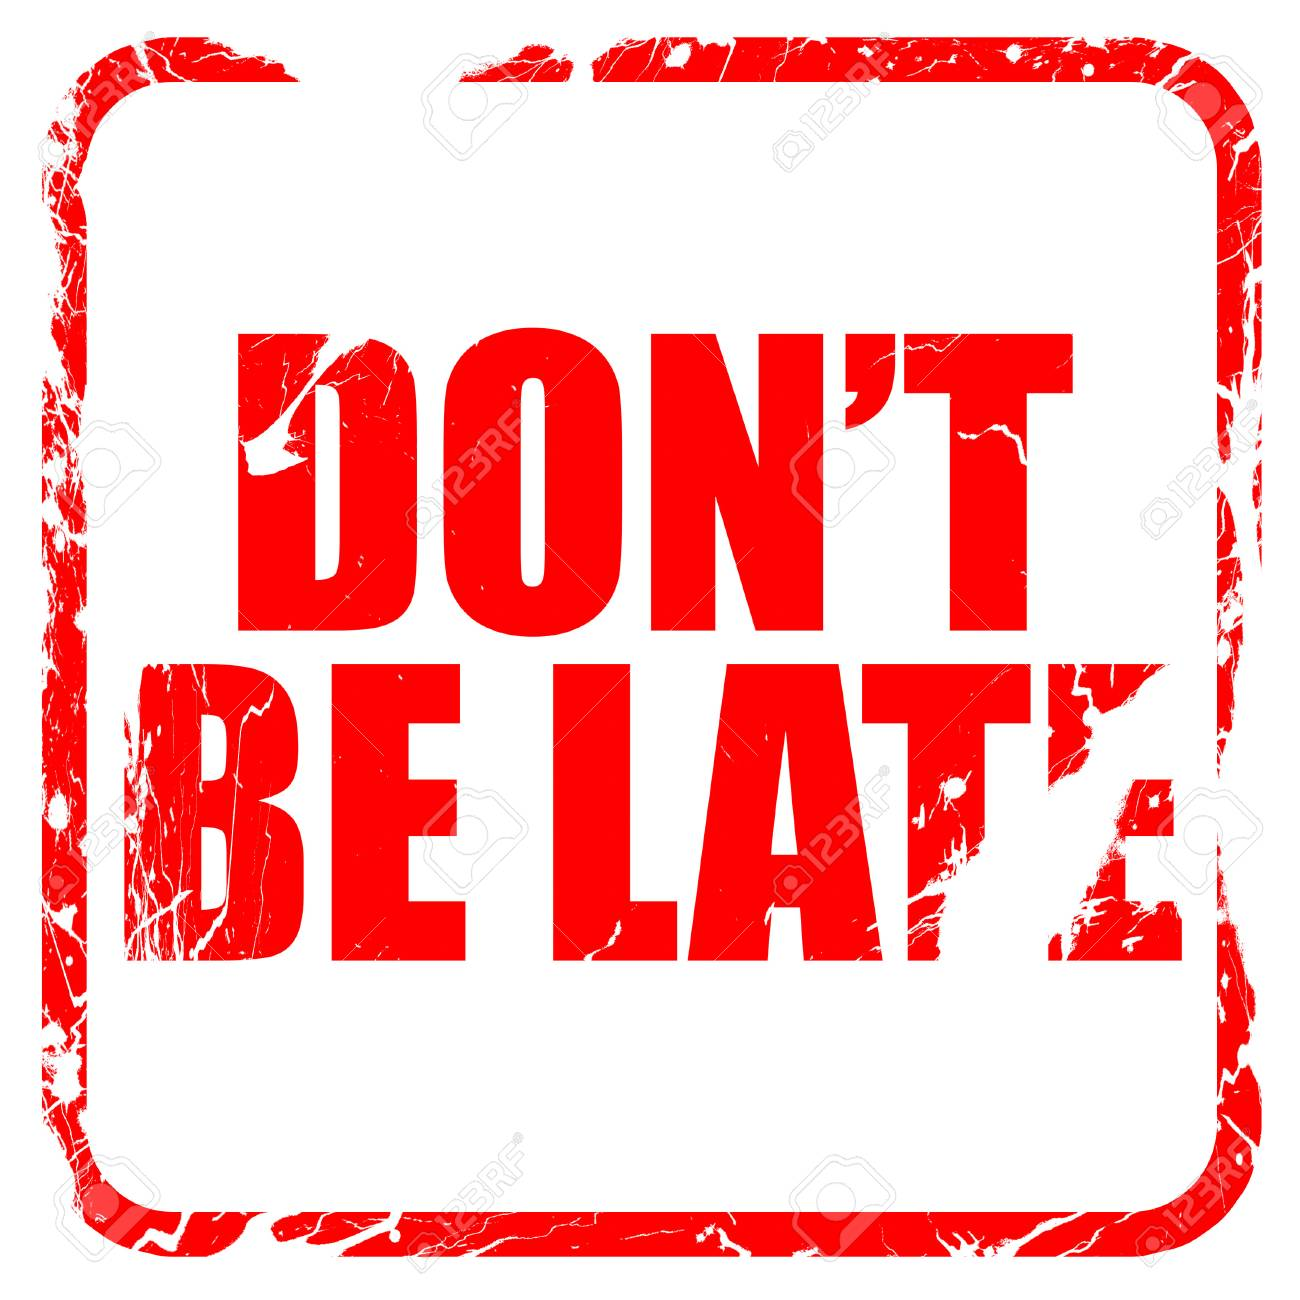 don't be late, red rubber stamp with grunge edges.